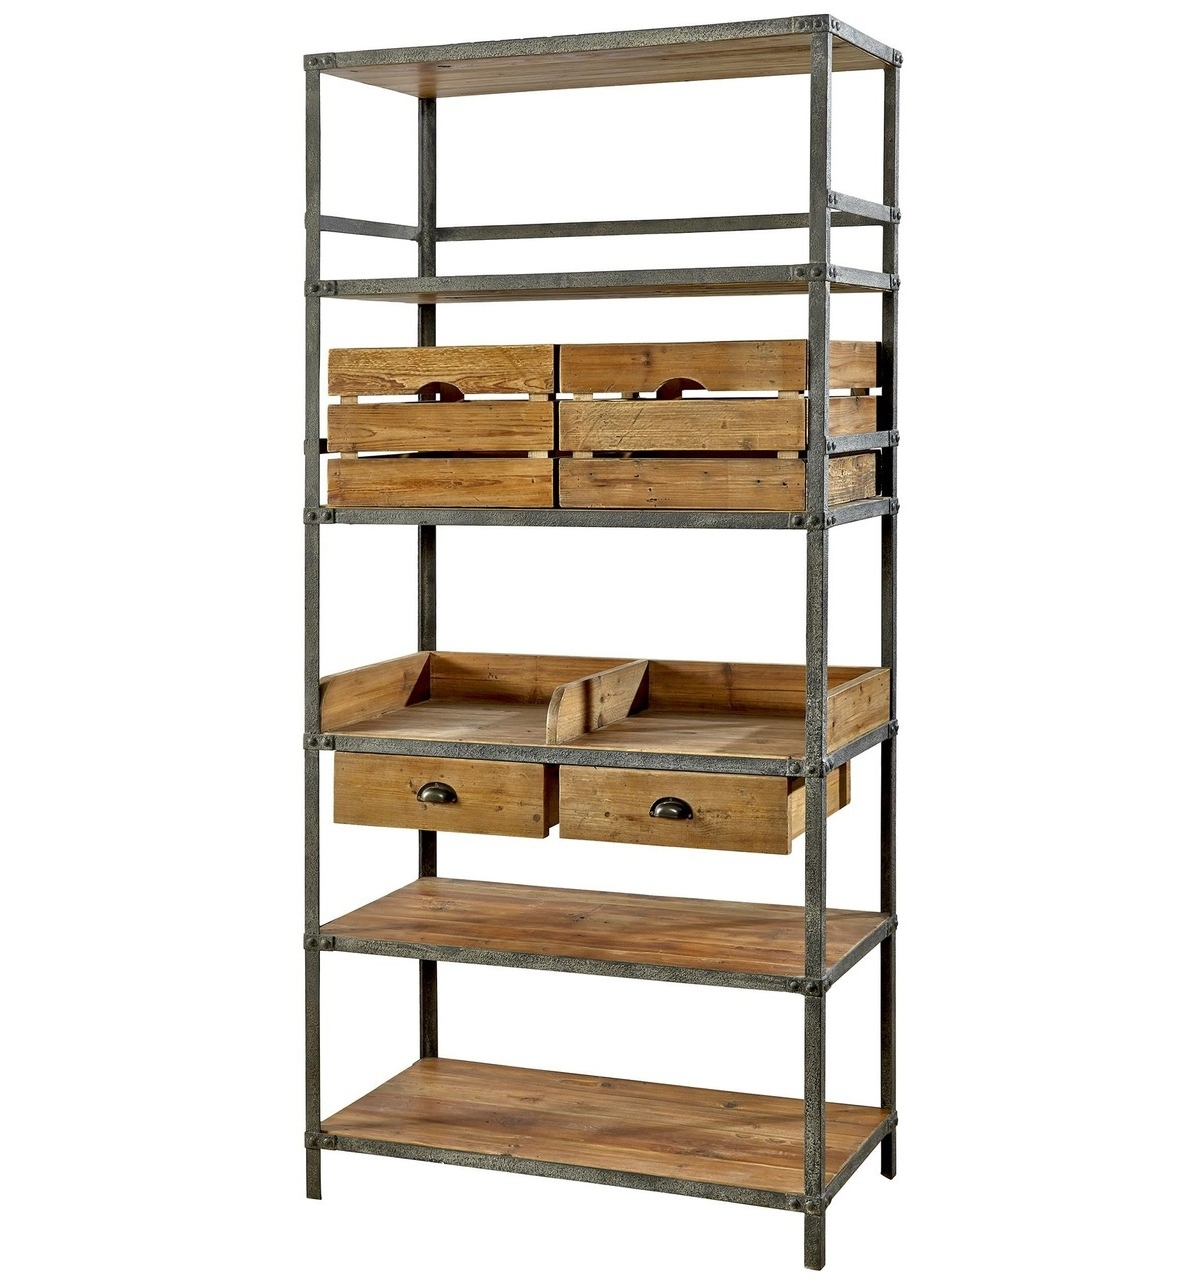 Bookcases Ideas: Bookcases Wood Metal And Glass Crate And Barrel Within Famous Metal And Wood Bookcases (View 4 of 15)